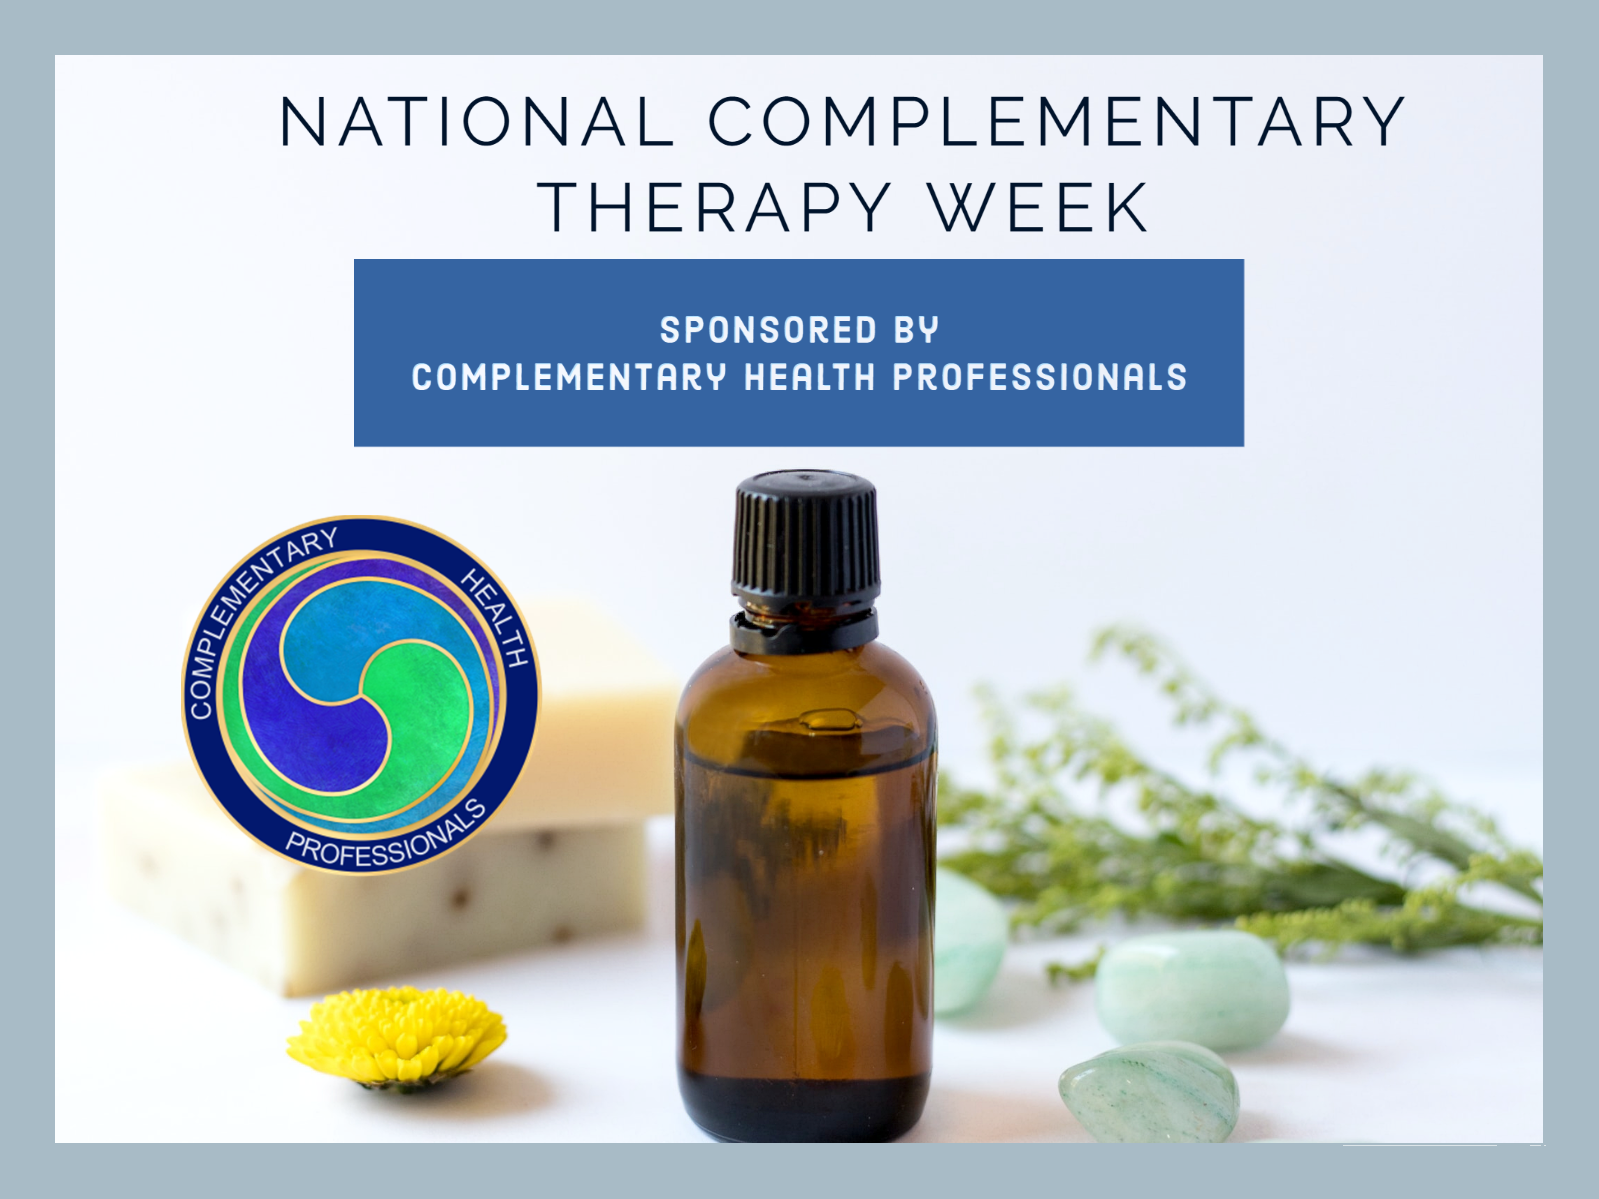 Complementary Therapy Week